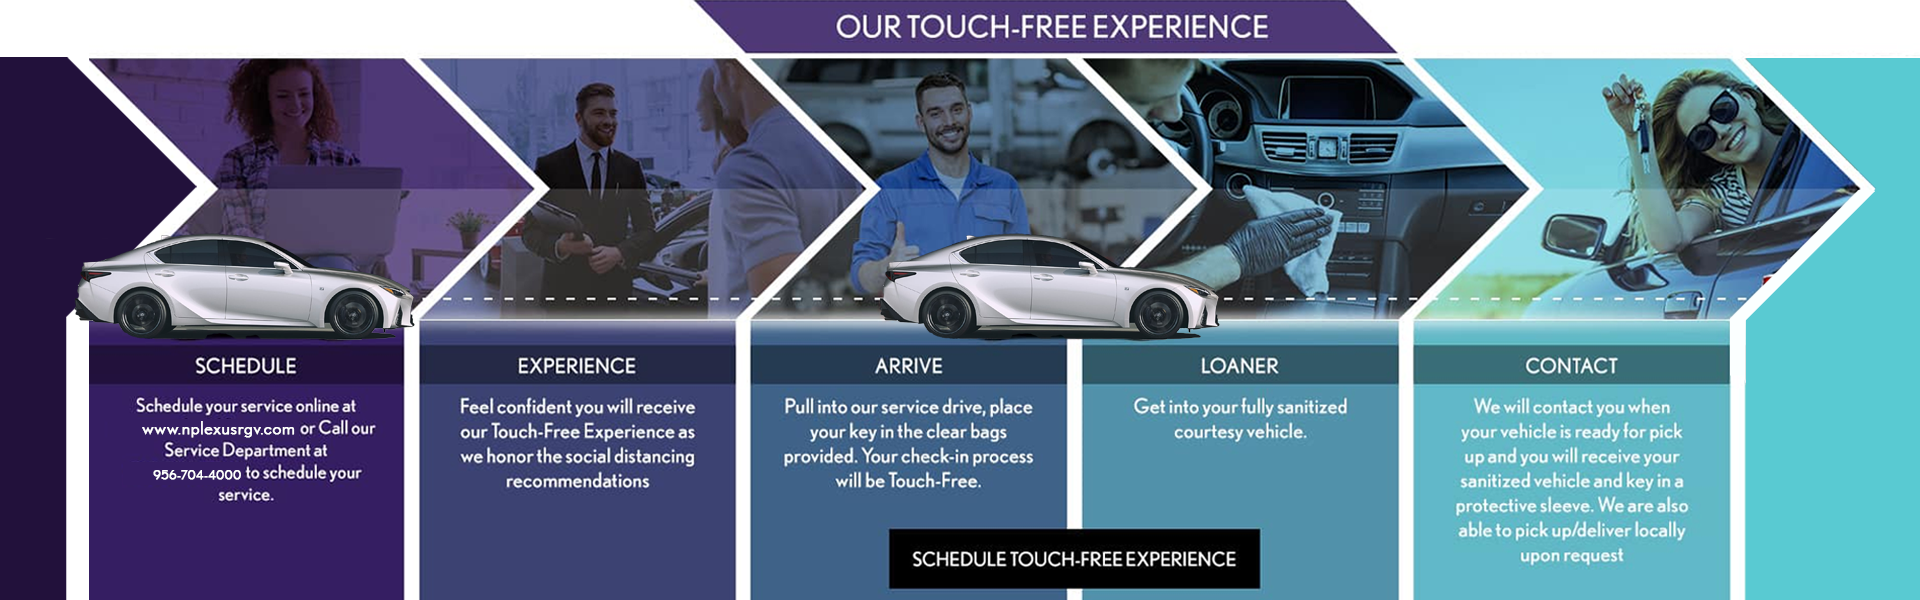 Our Touch Free Experience